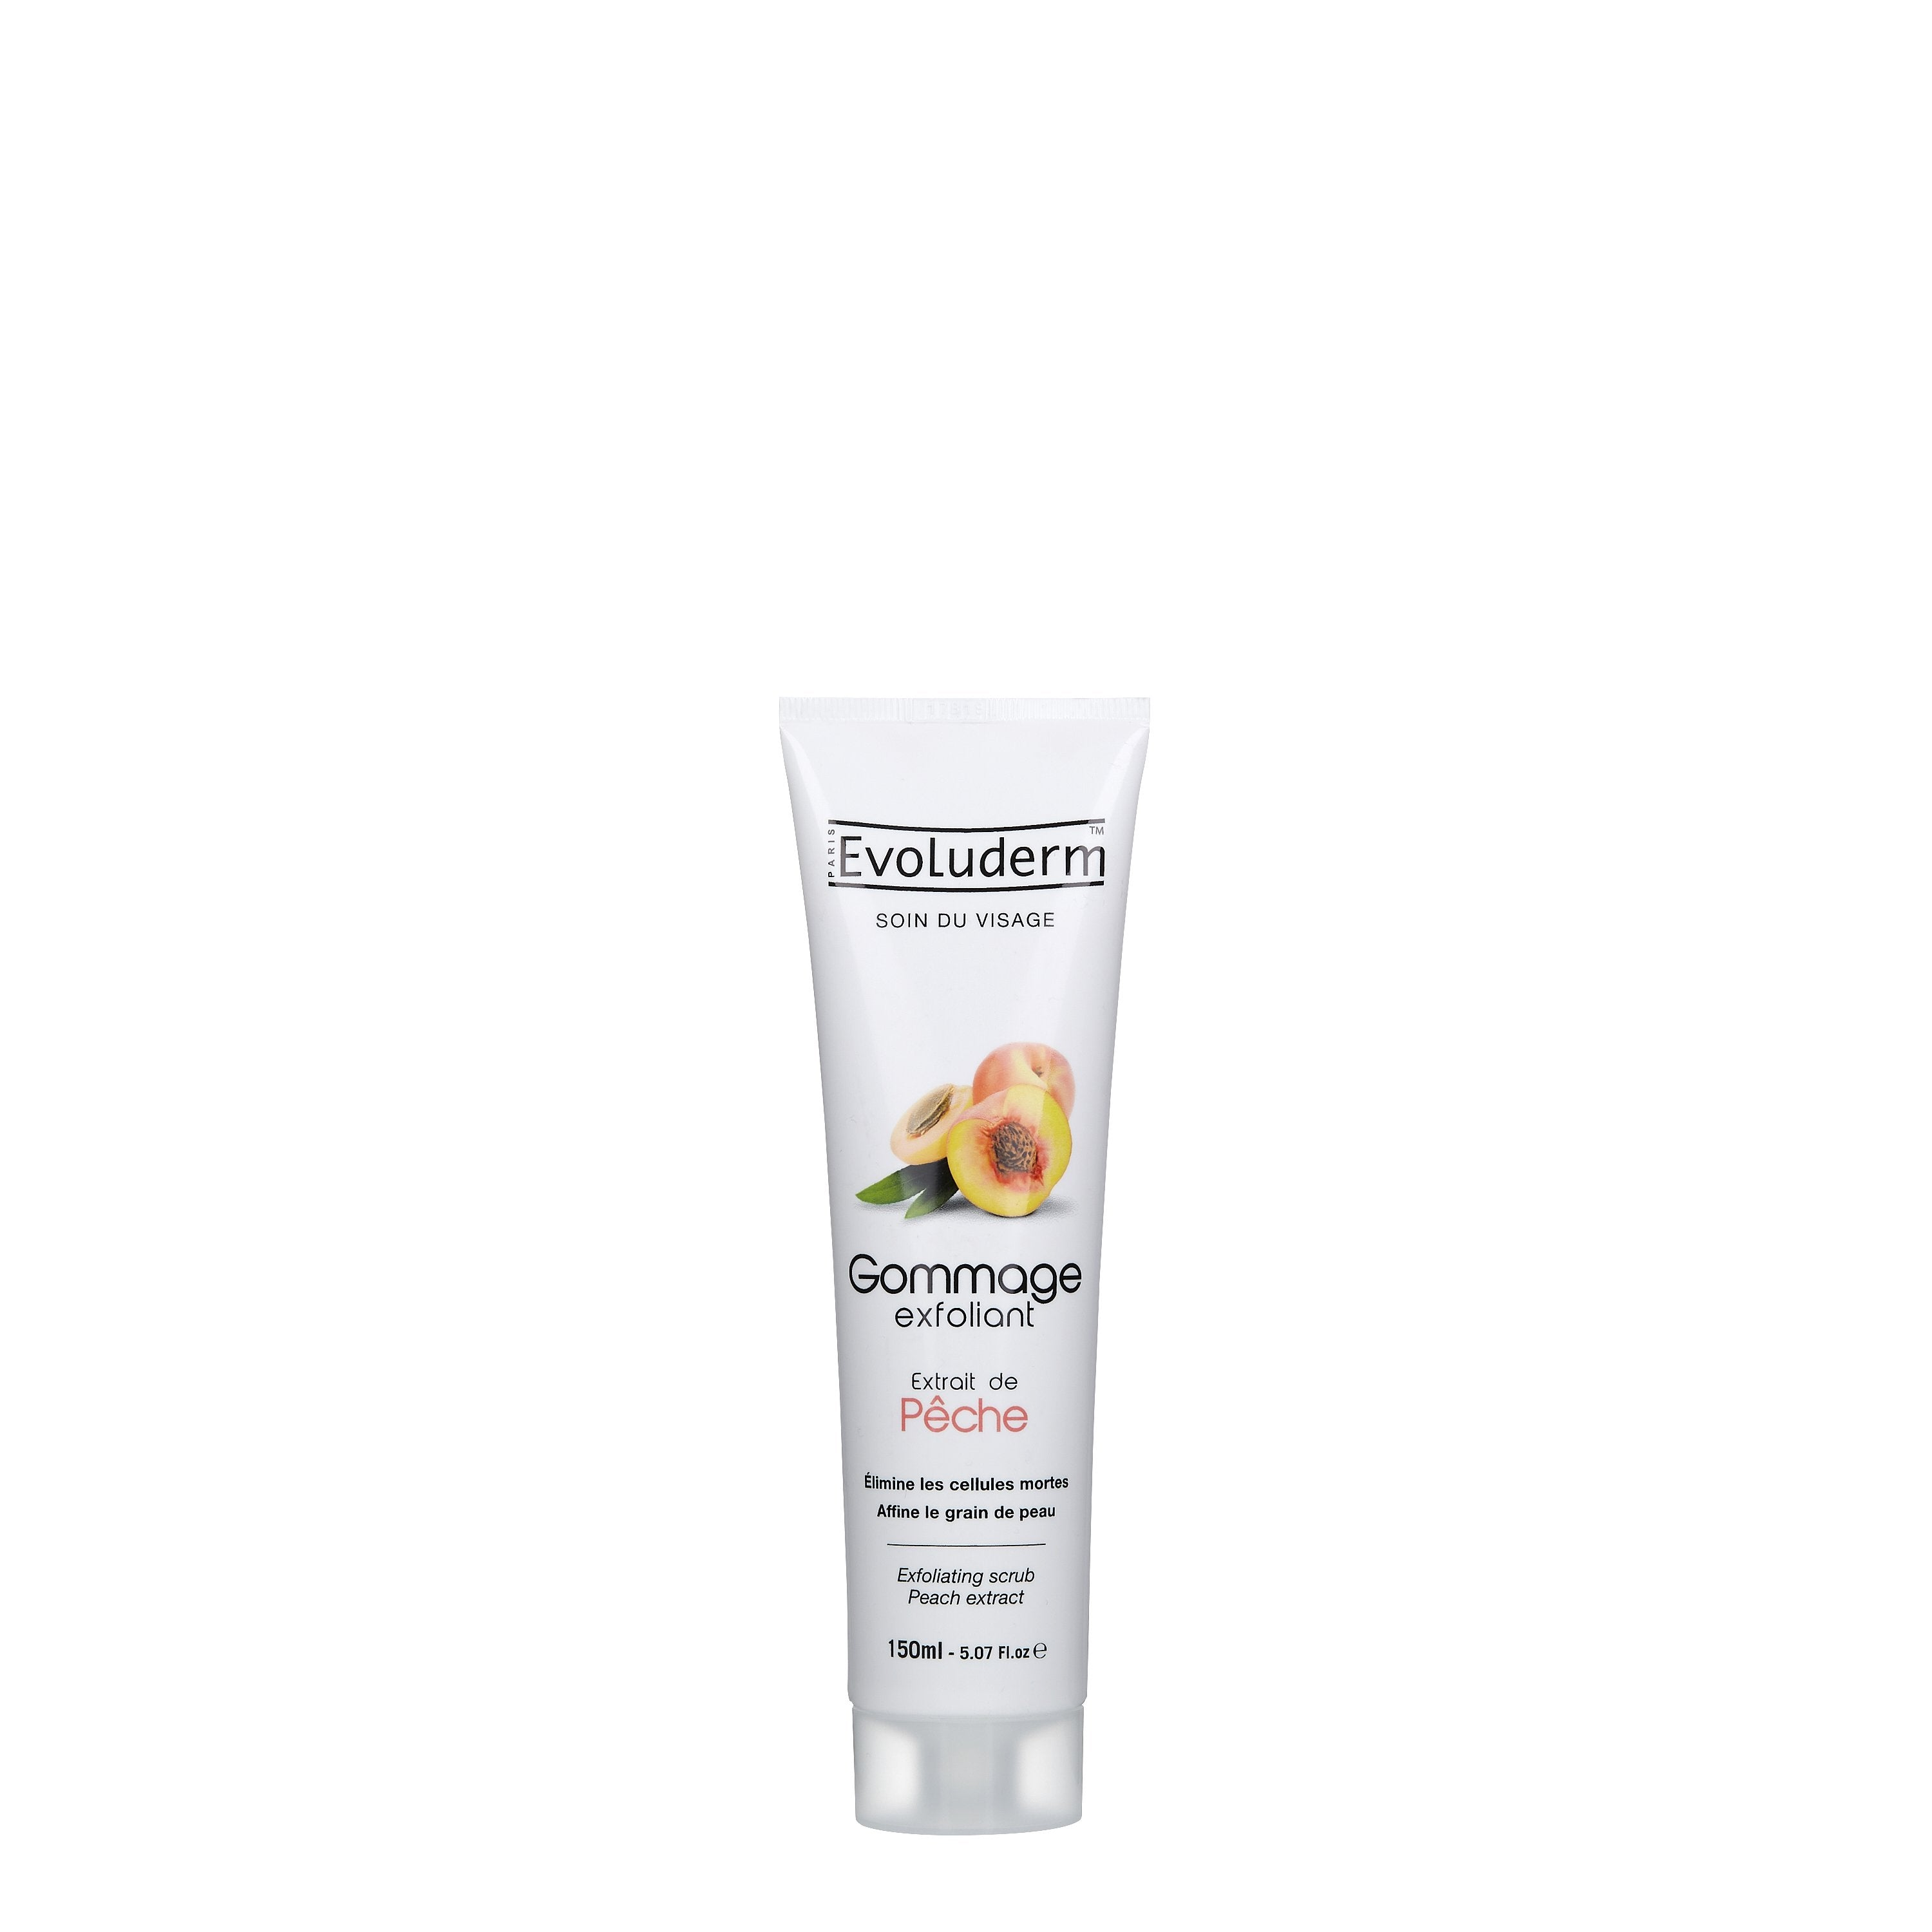 Exfoliating Face Scrub with Peach Extract